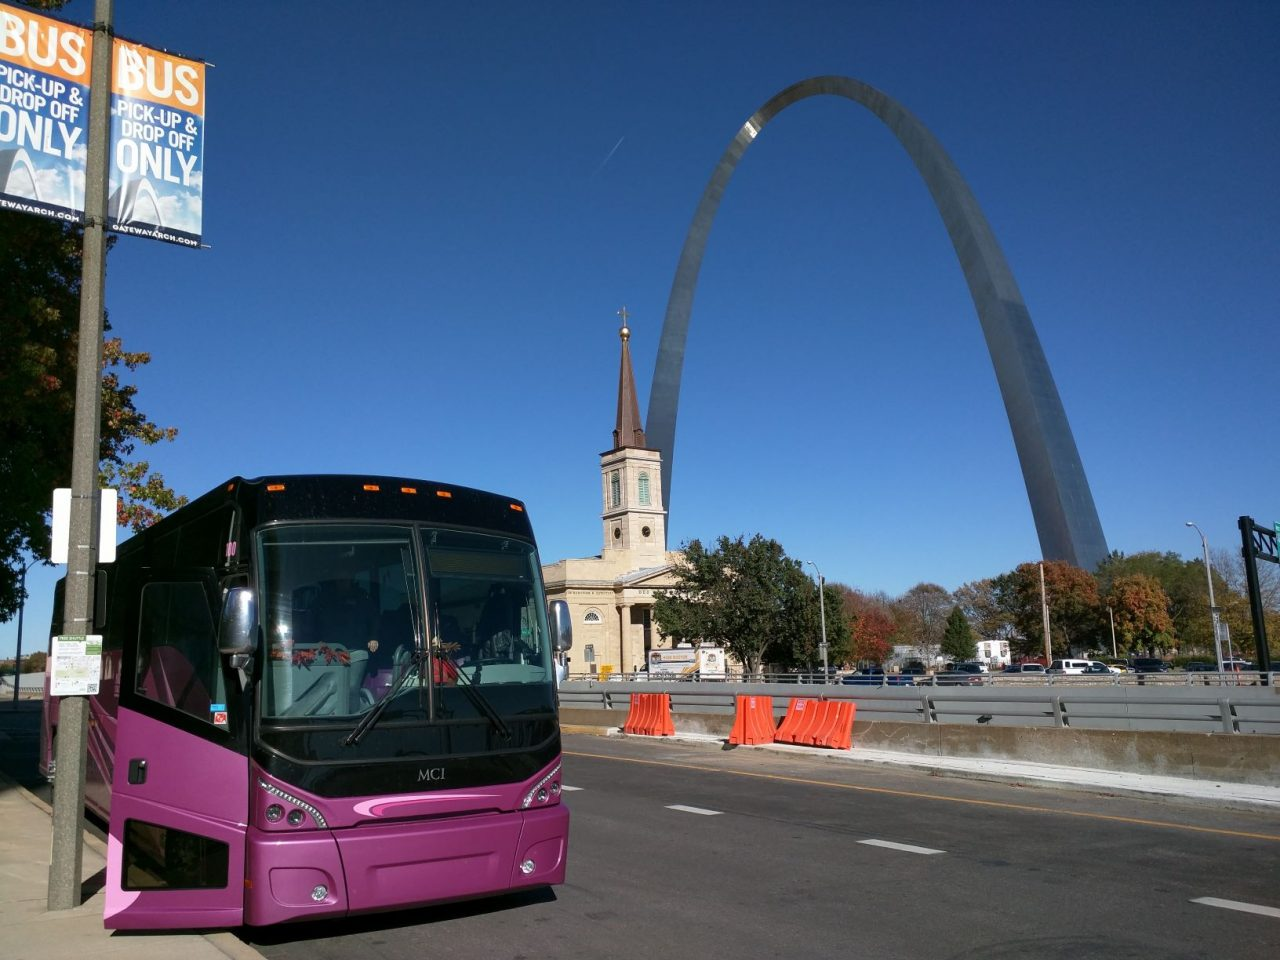 Nagel Coach with St. Louis Gateway Arch in background